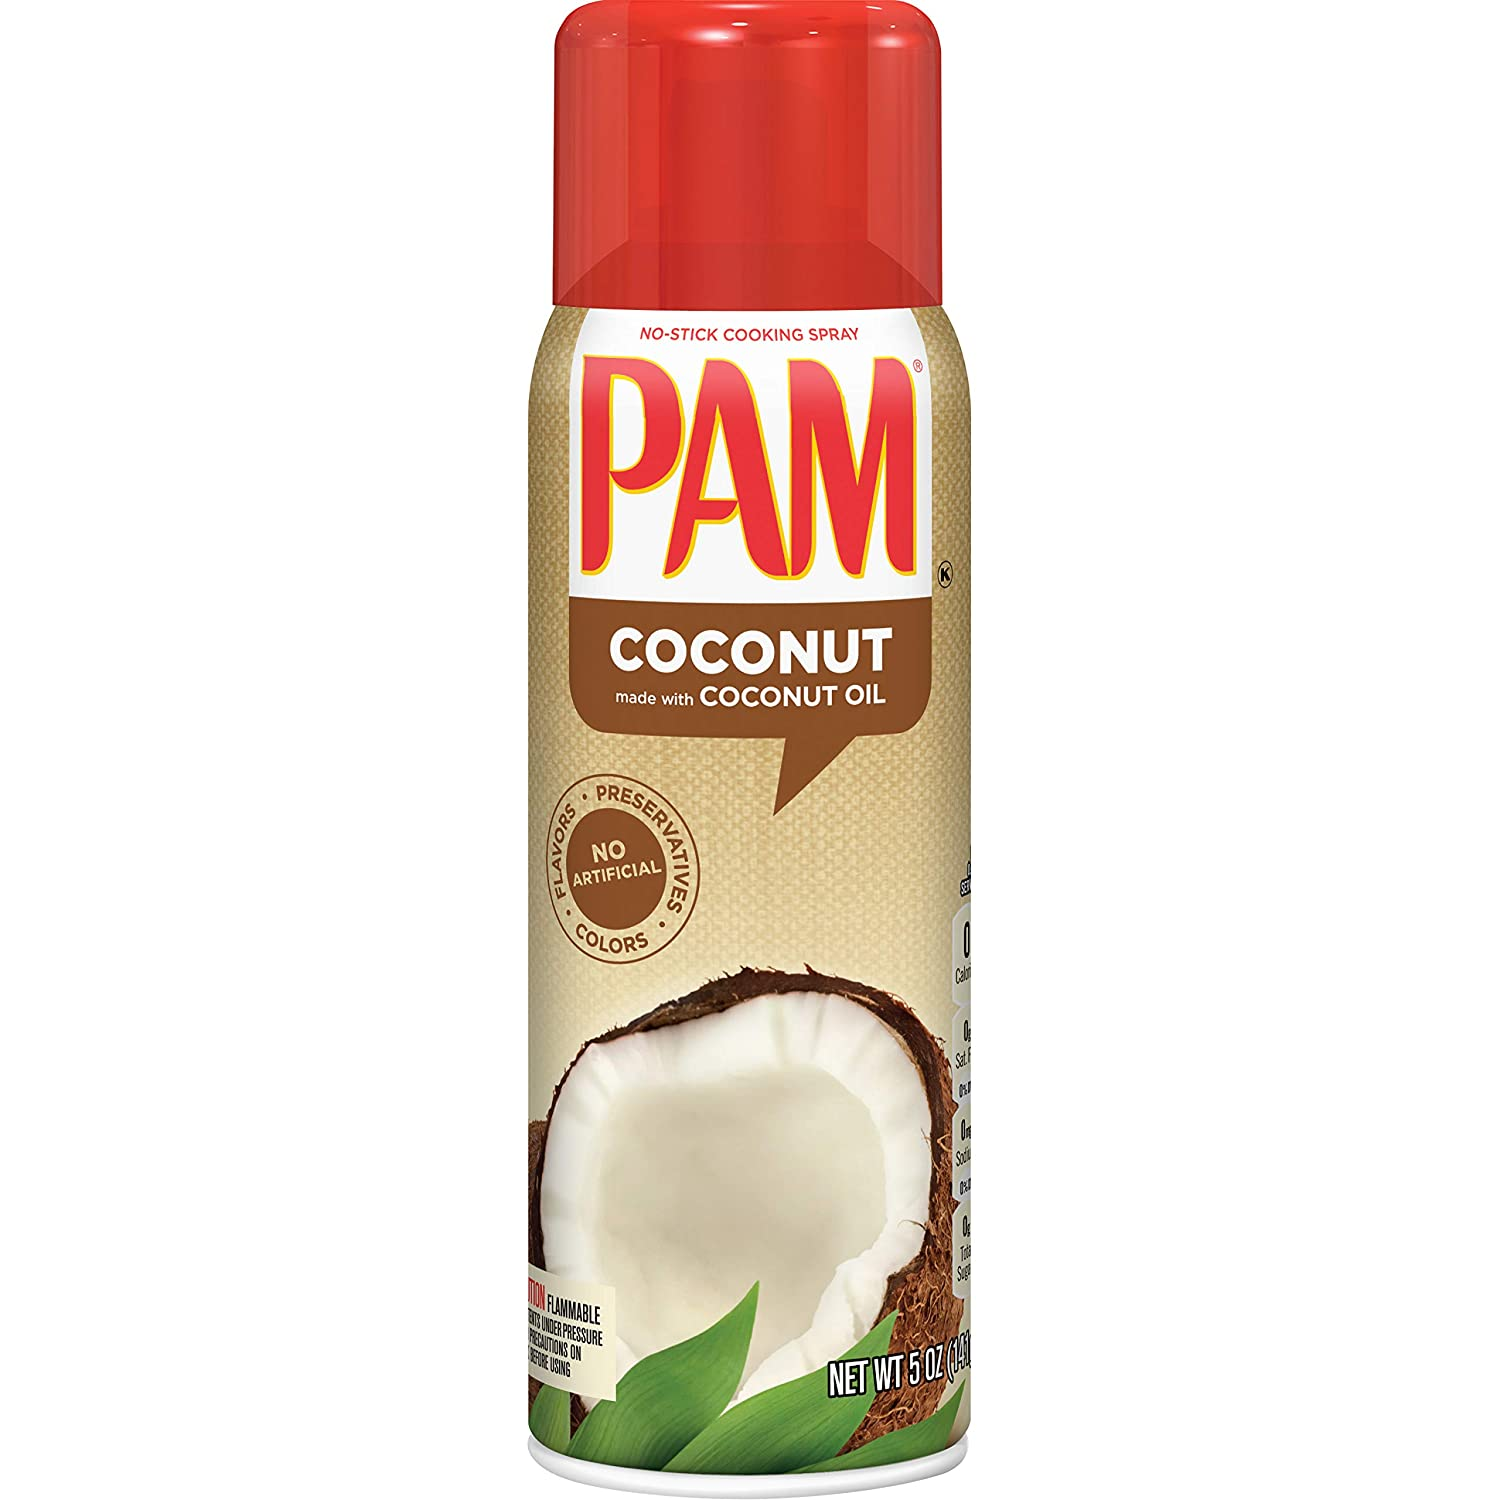 Amazon.com : PAM Coconut Oil Cooking Spray, 5 oz. : Grocery & Gourmet Food